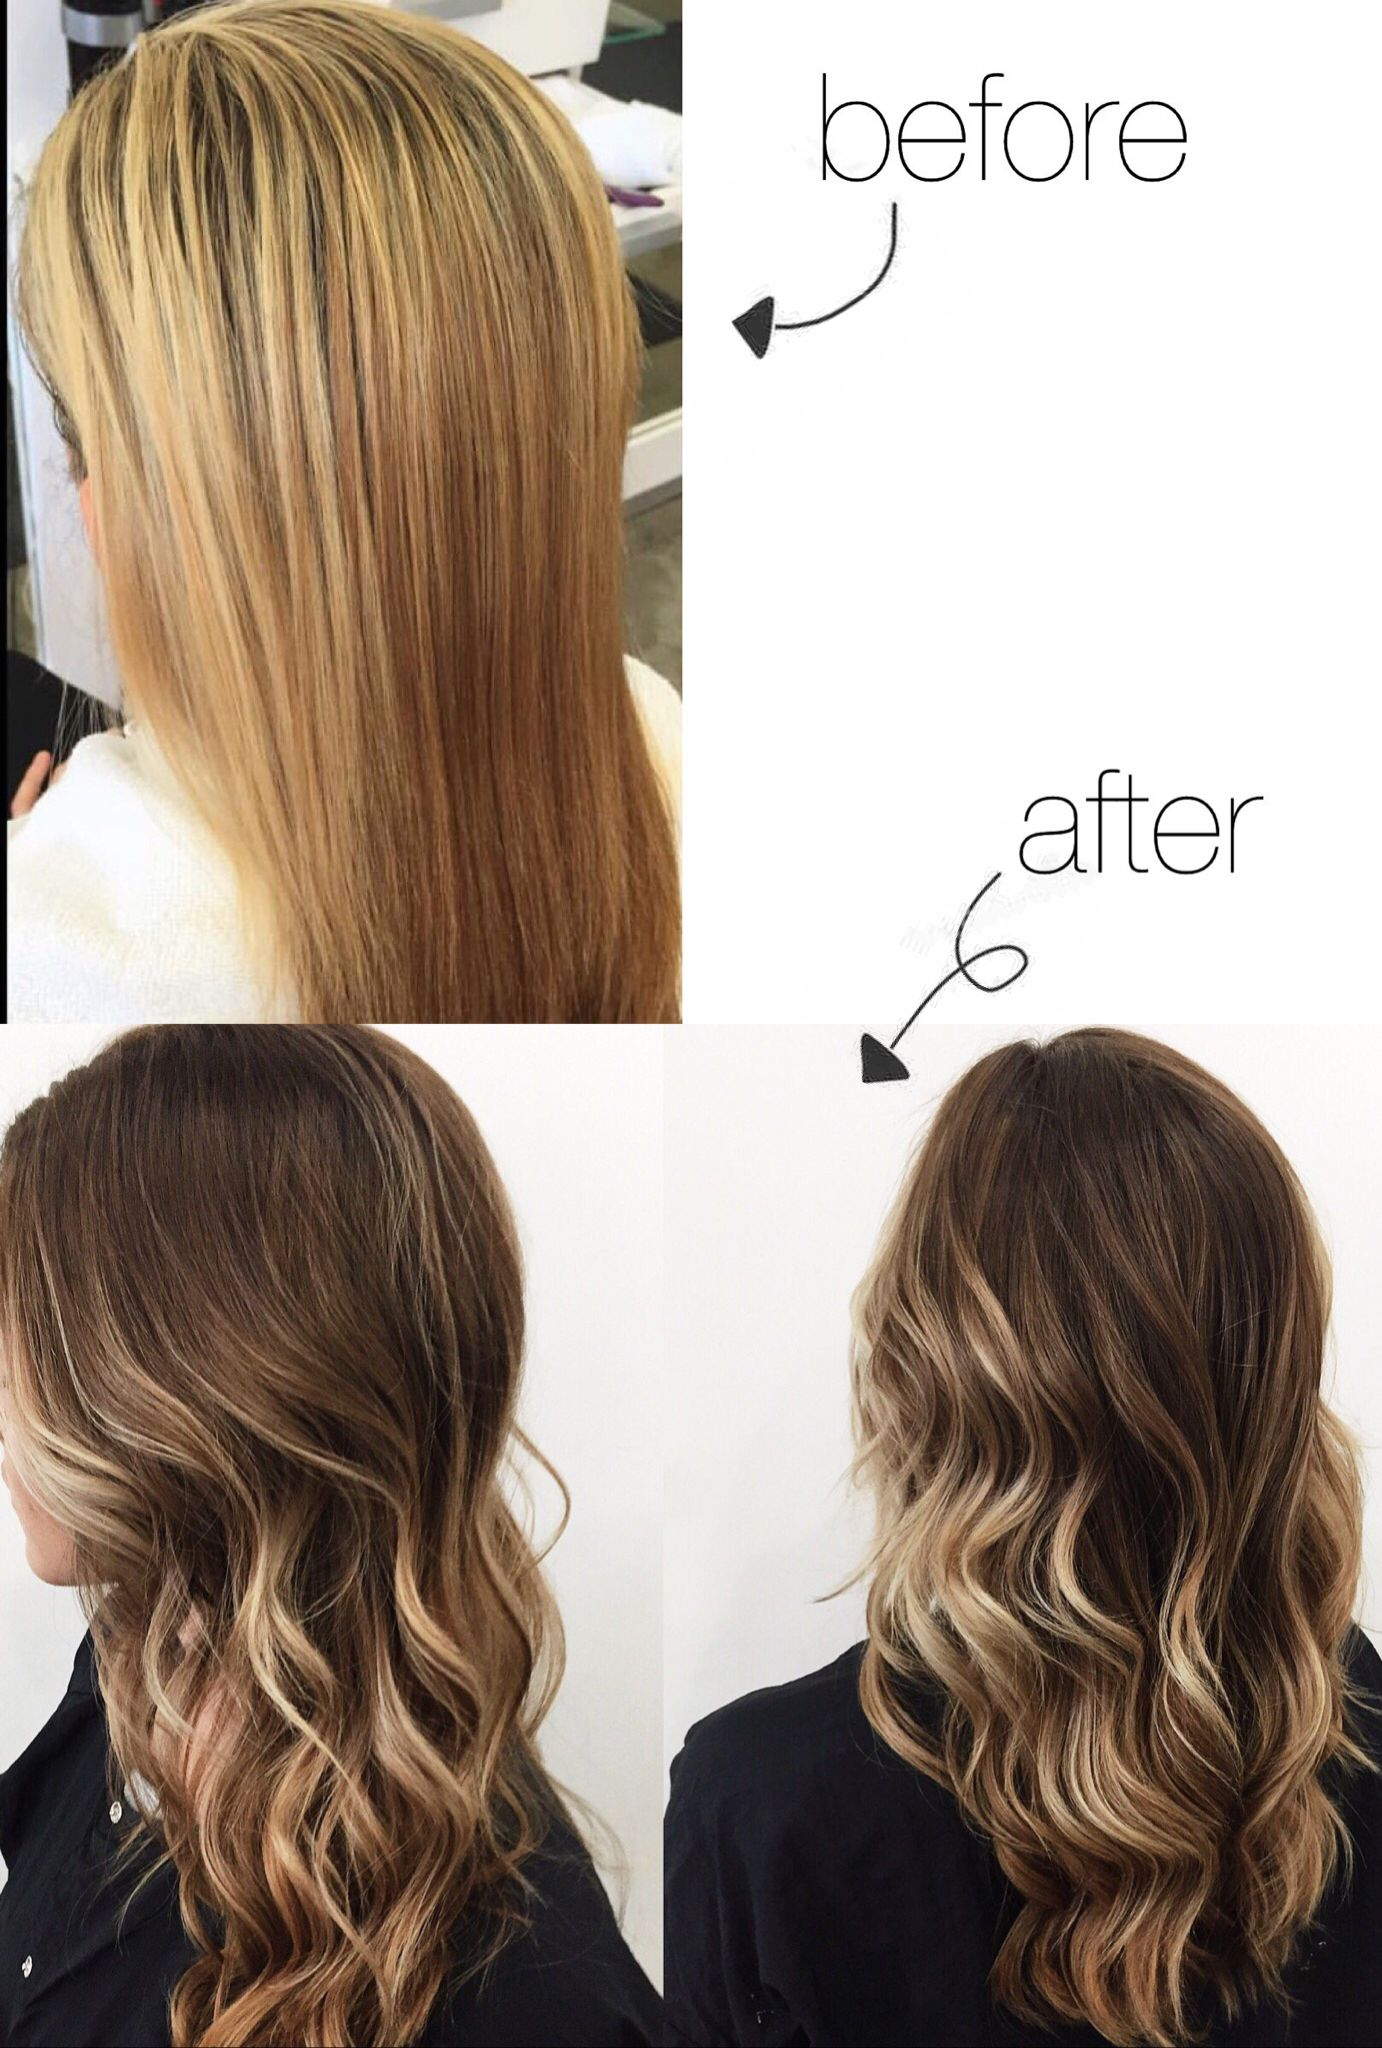 I Finally Am My Own Hair Goals I Went From A Horrible Box Color Highlight Blonde To The Best Ombre Balayag Horrible Hair Hair Color Balayage Balayage Hair